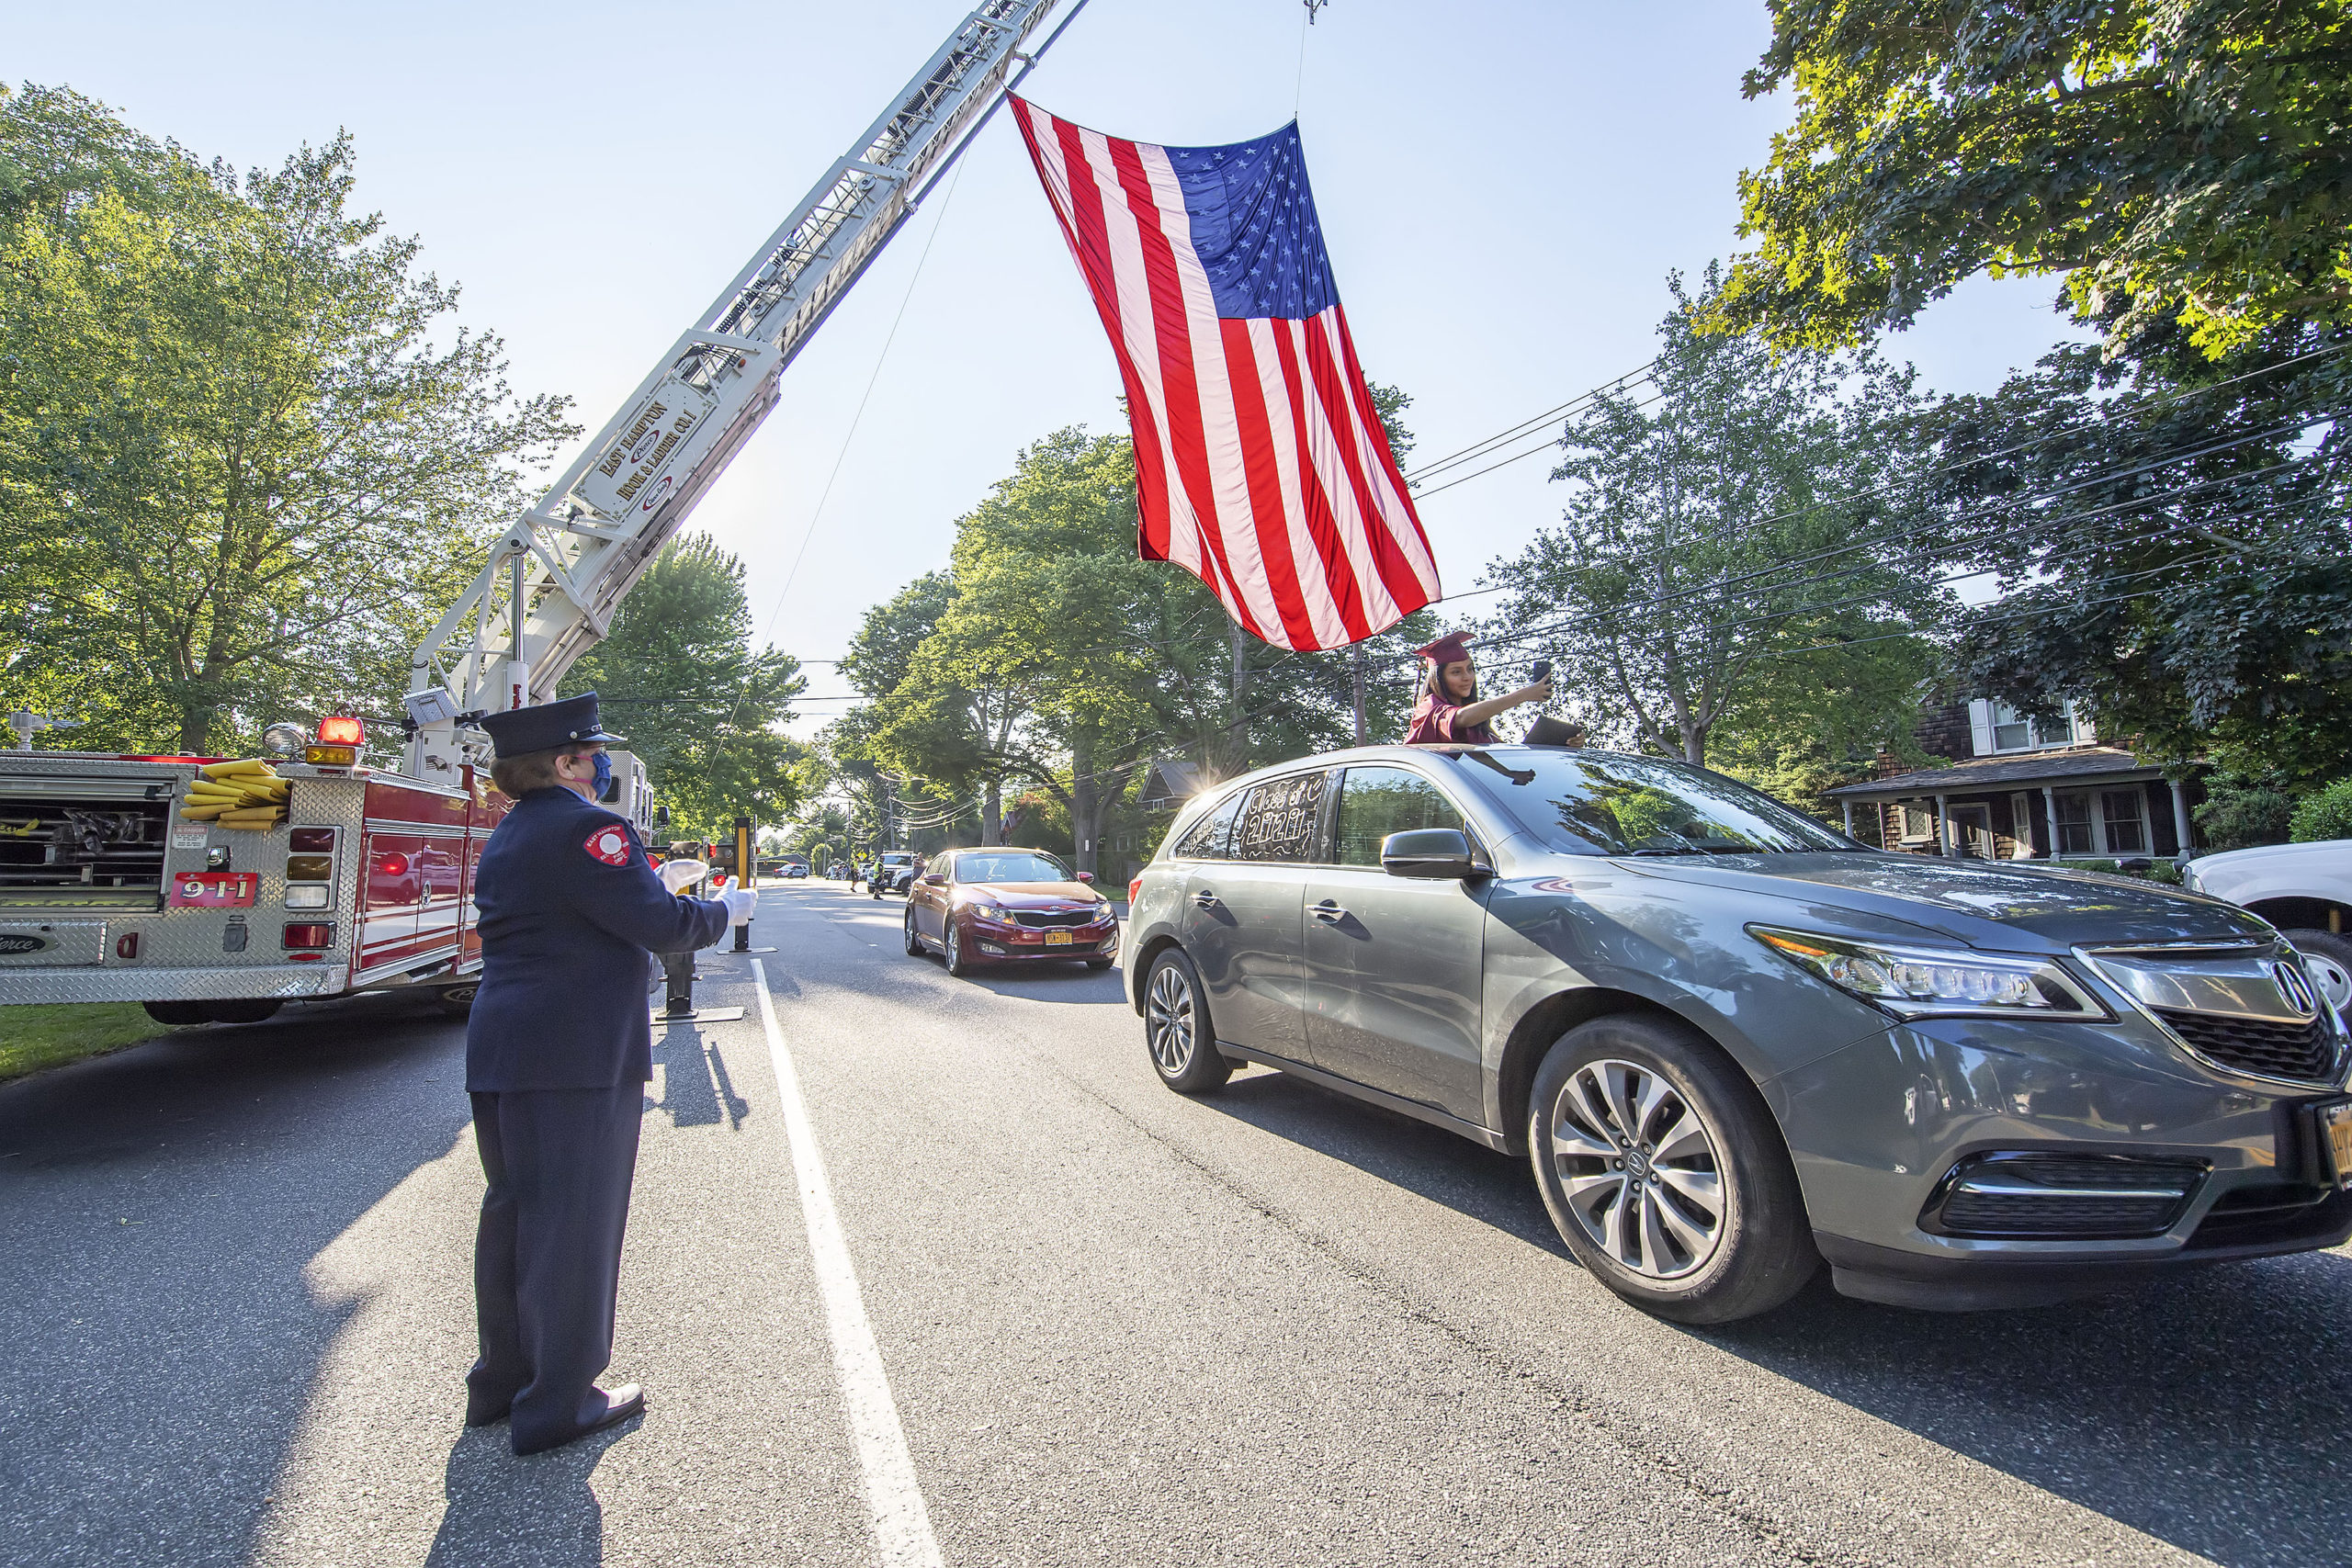 A newly-graduated East Hampton High School senior gets a round of applause from East Hampton Fire Department Fire Police member Joan Jacobs as she photographs herself passing underneath a large American flag hoisted by EHFD Hool & Ladder Co.#1 in honor on the graduates on Newtown Lane following the 2020 graduation ceremony at the East Hampton High School on Friday.